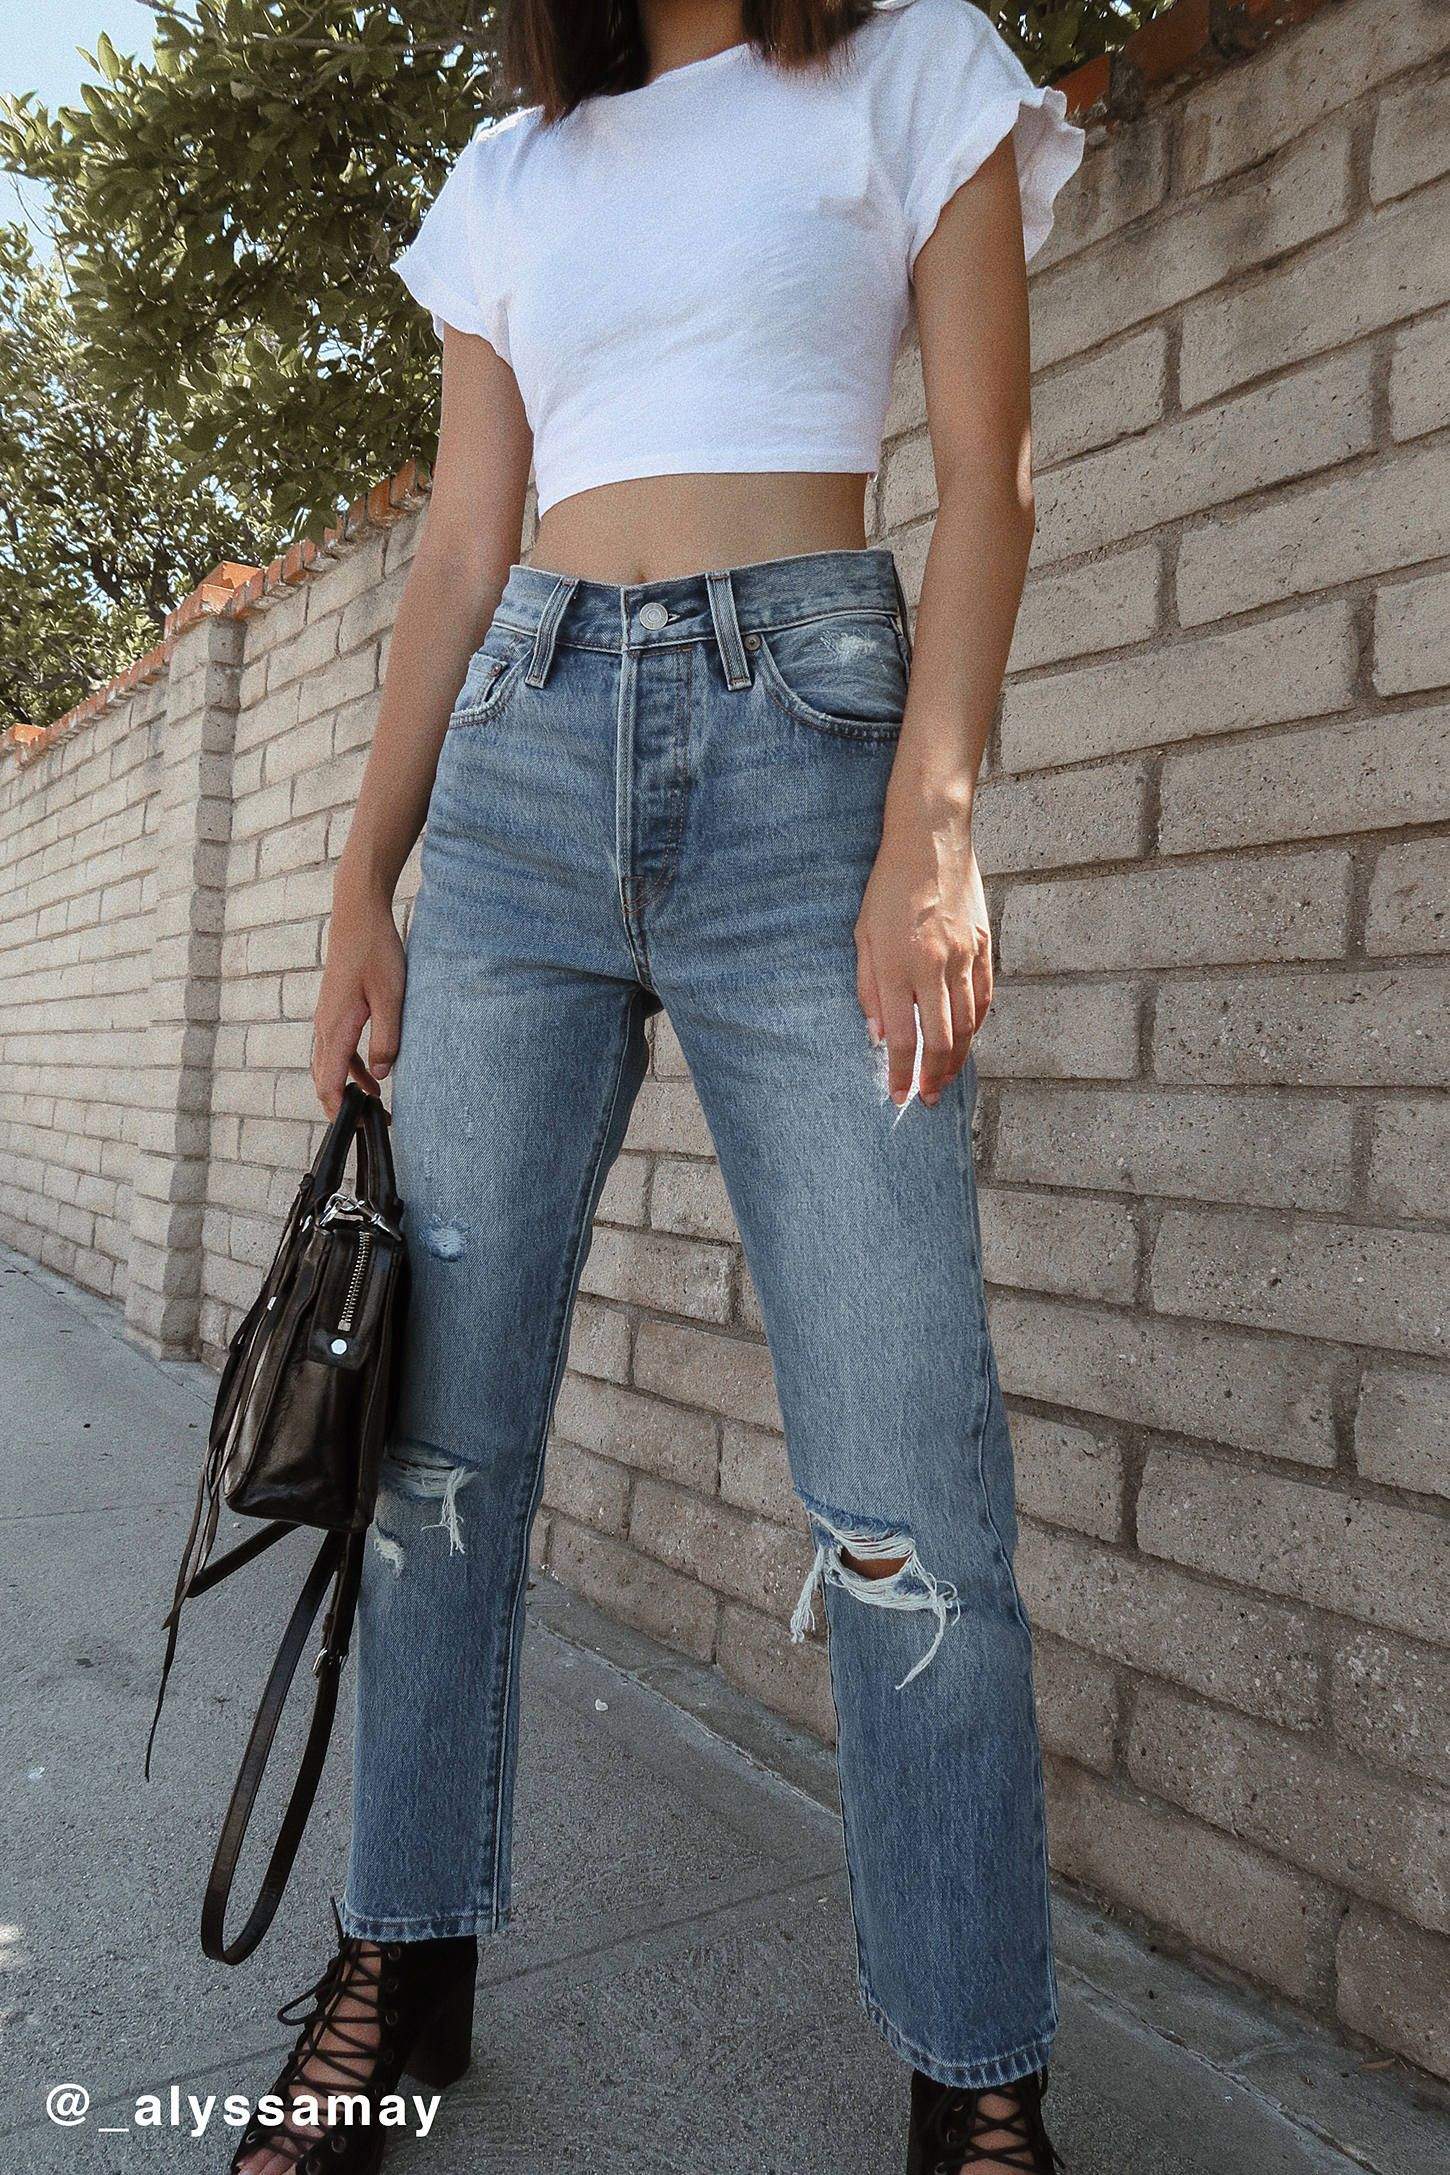 a8a14eec Levi's 501 Original Cropped Jean - Vintage Find in 2019 | style ...